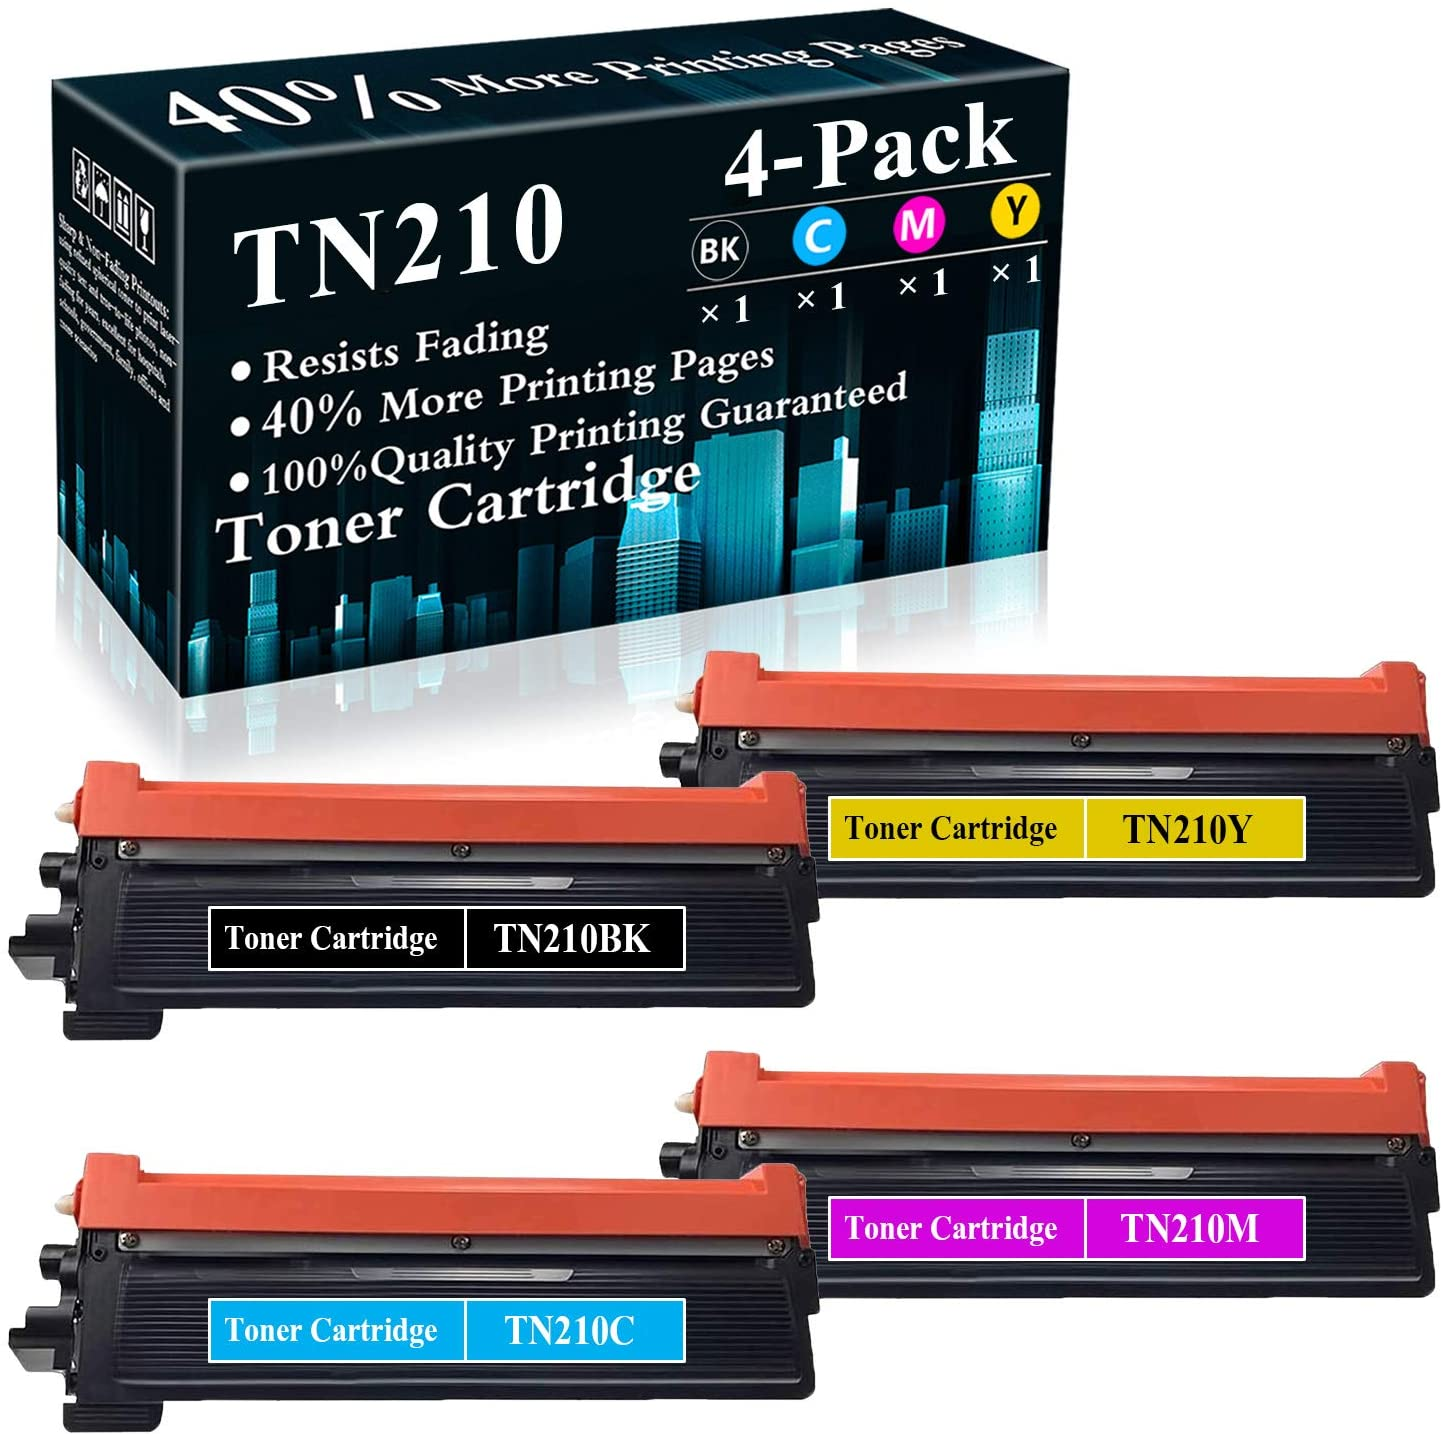 4-Pack (BK/C/M/Y) TN210 TN210BK TN210C TN210M TN210Y Compatible Toner Cartridge Replacement for Brother HL-3040CN 3045CN 3075CW 8370 MFC-9010CN 9125CN 9325CW DCP-9010CN Printer,Sold by TopInk